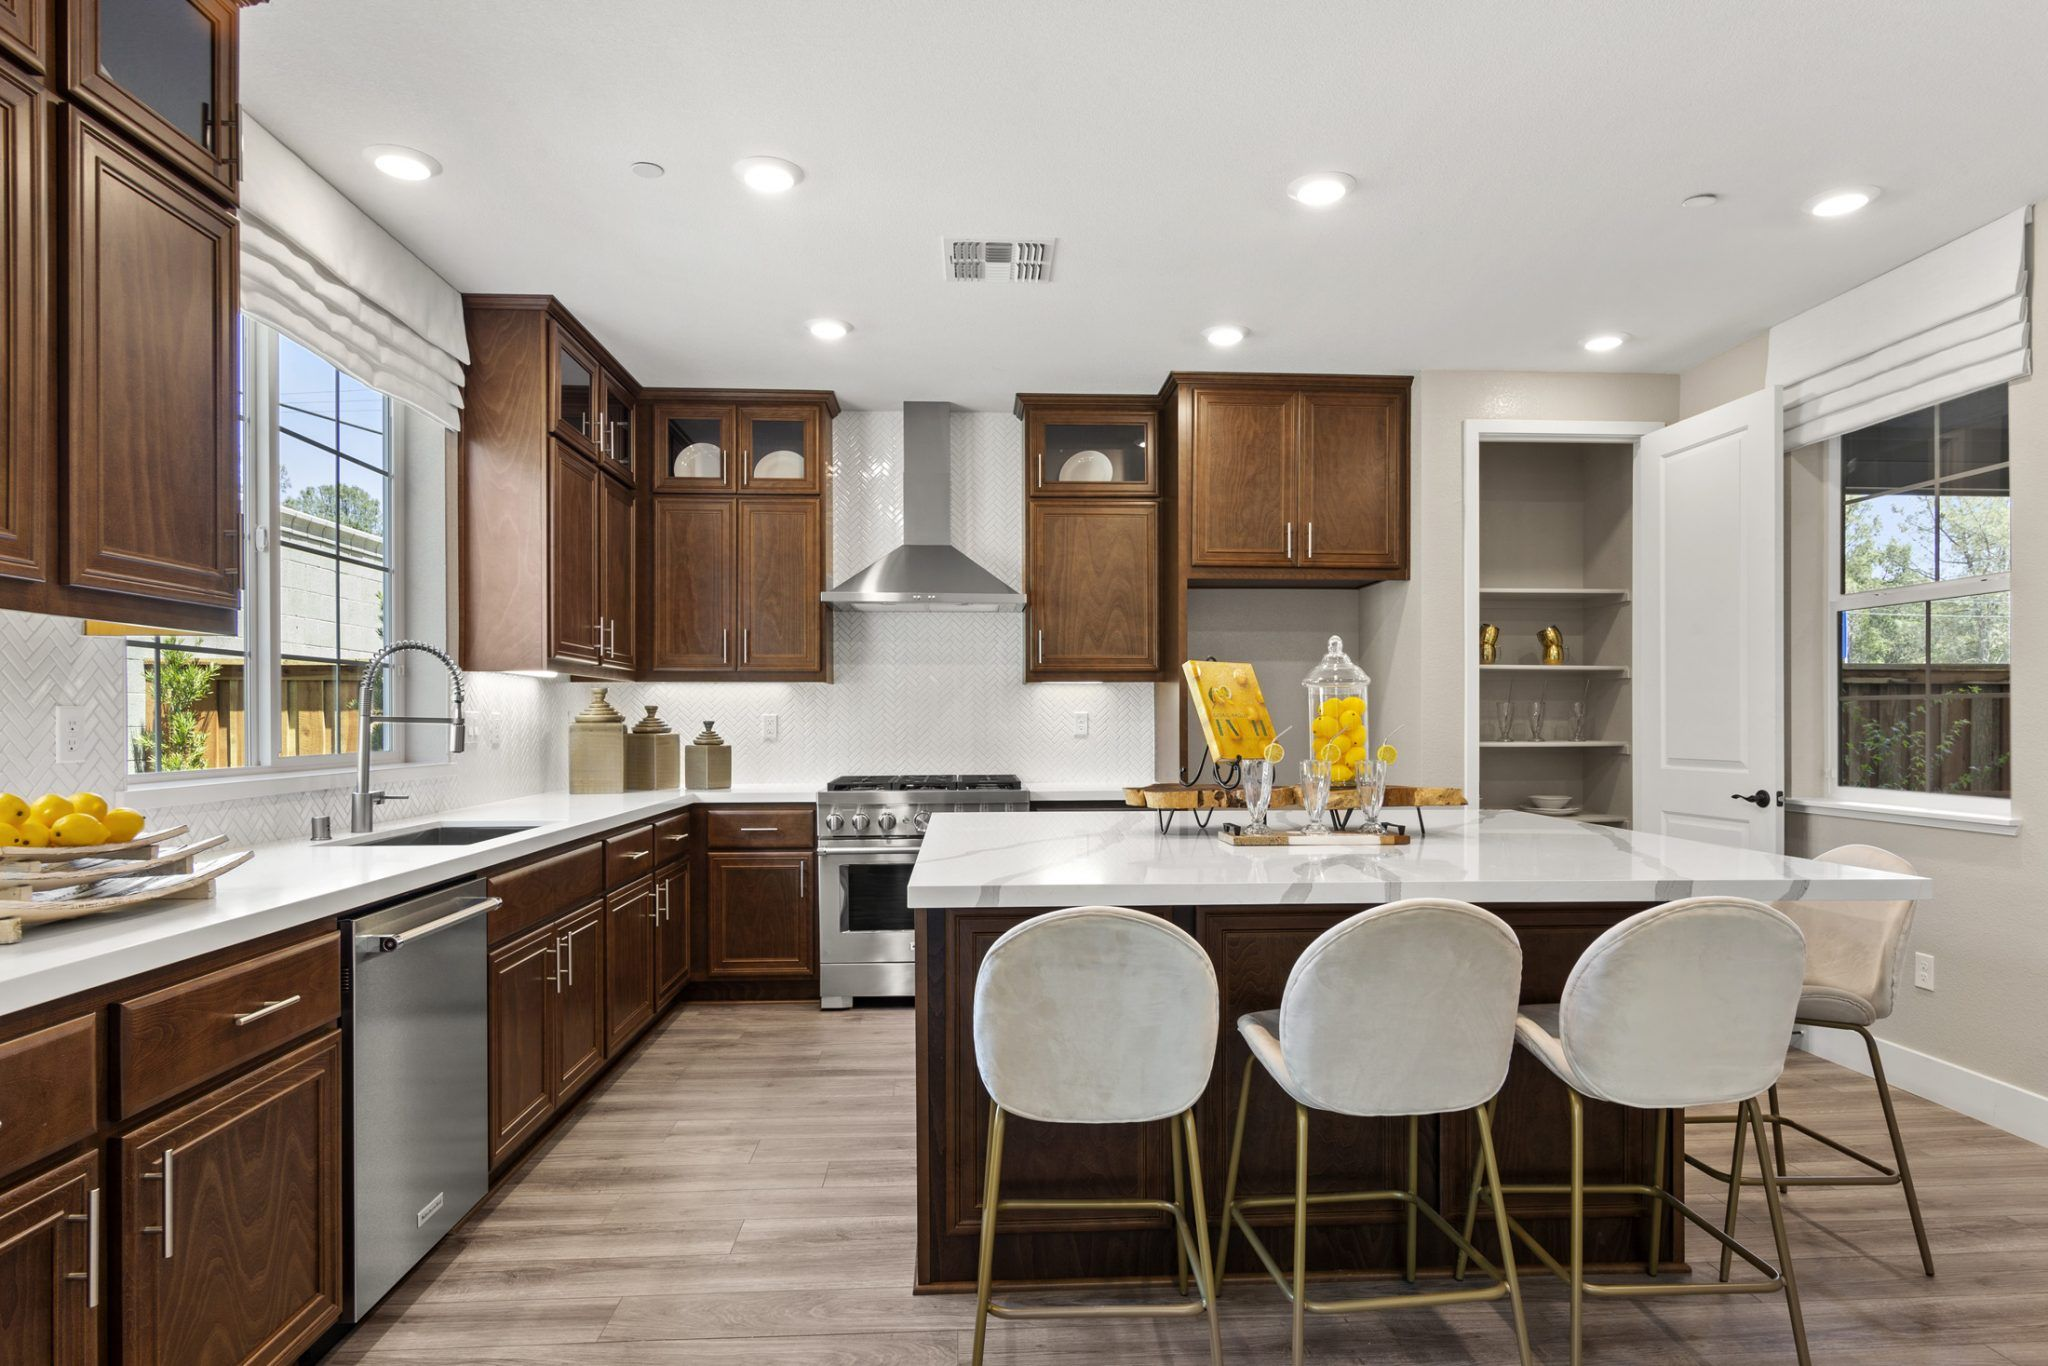 Kitchen featured in the Goldfield By Blue Mountain Communities in Sacramento, CA